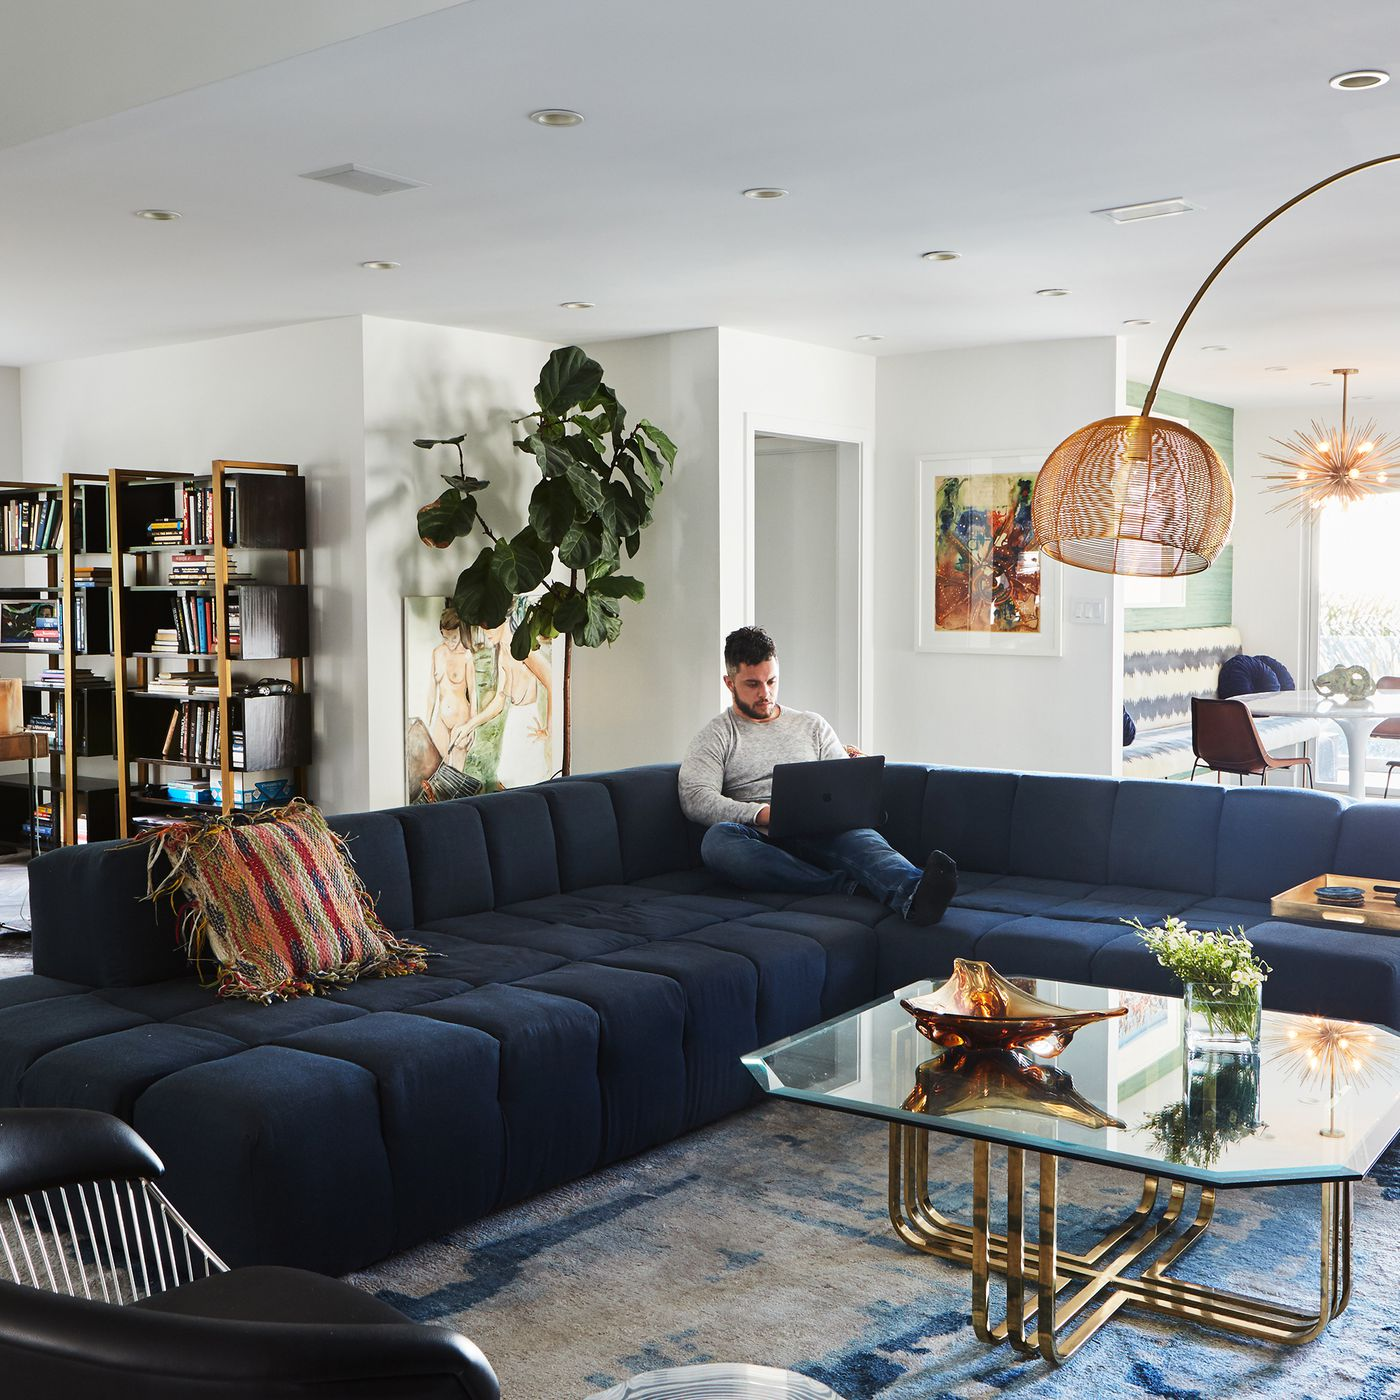 A bachelor embraces color and quirk in the Hollywood Hills - Curbed LA